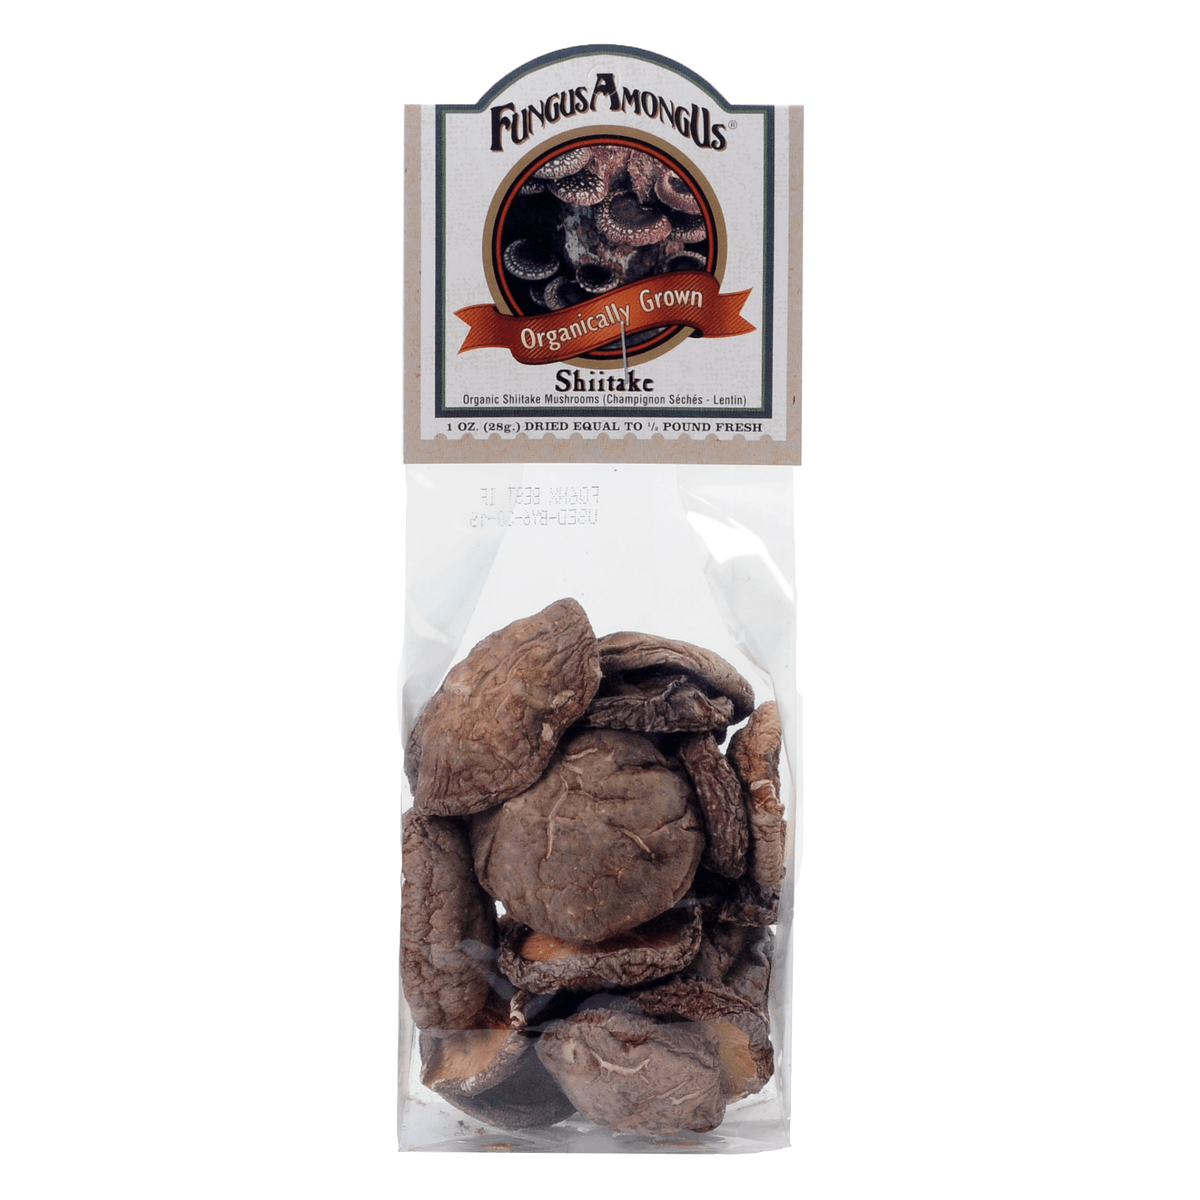 FungusAmongUs Organically Grown Shiitake Mushrooms in a 1-Ounce Bag